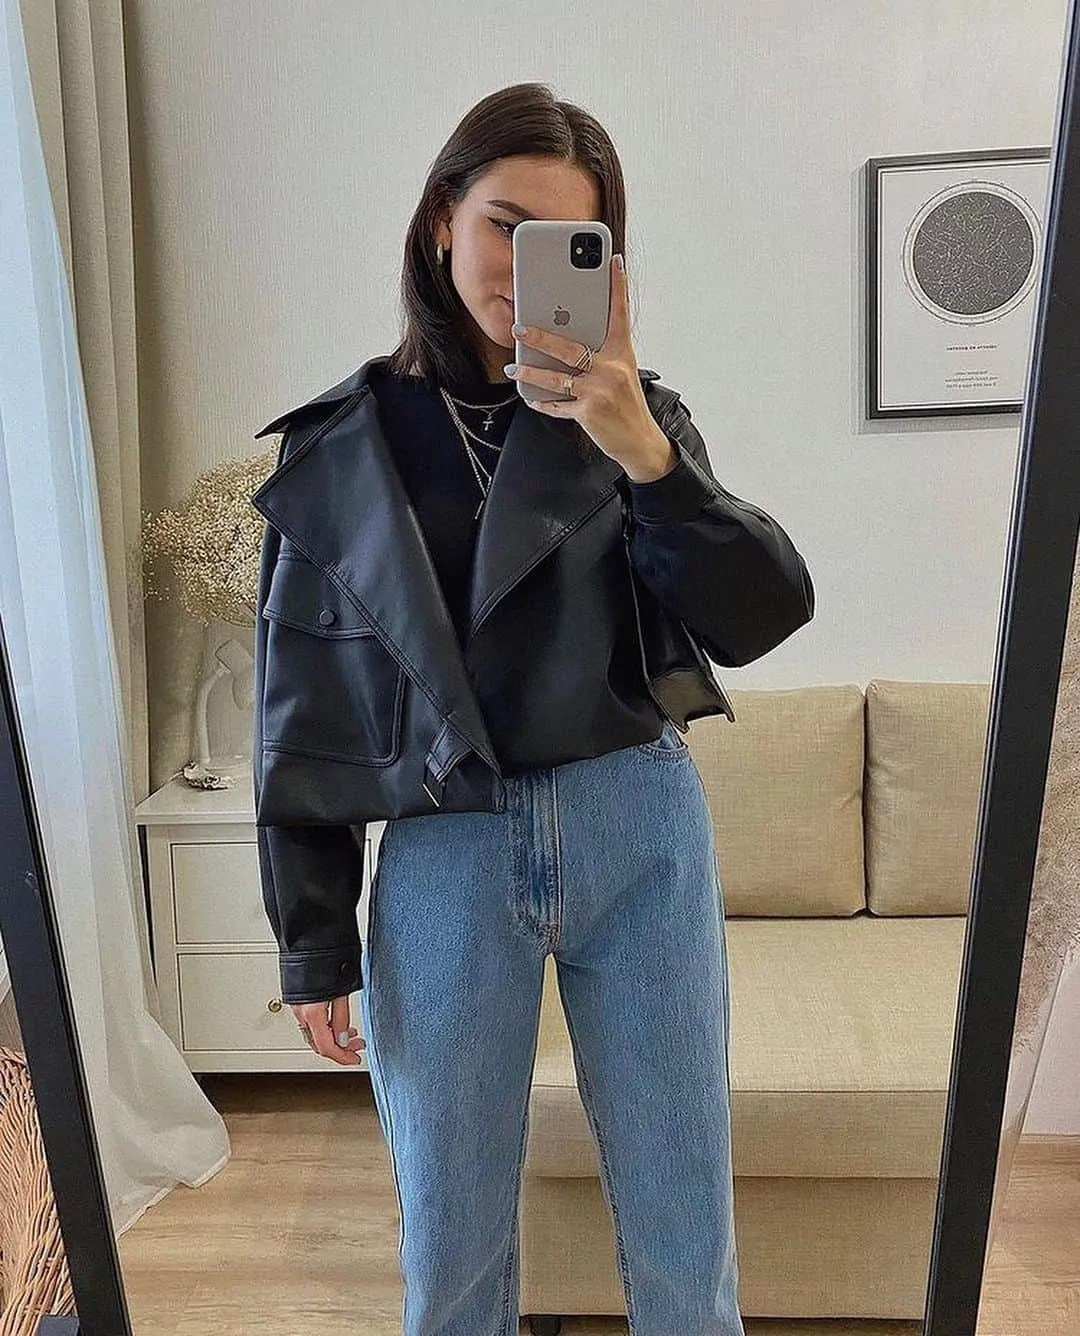 100+ fashion inspo outfits that you have to see no matter what your style is 151